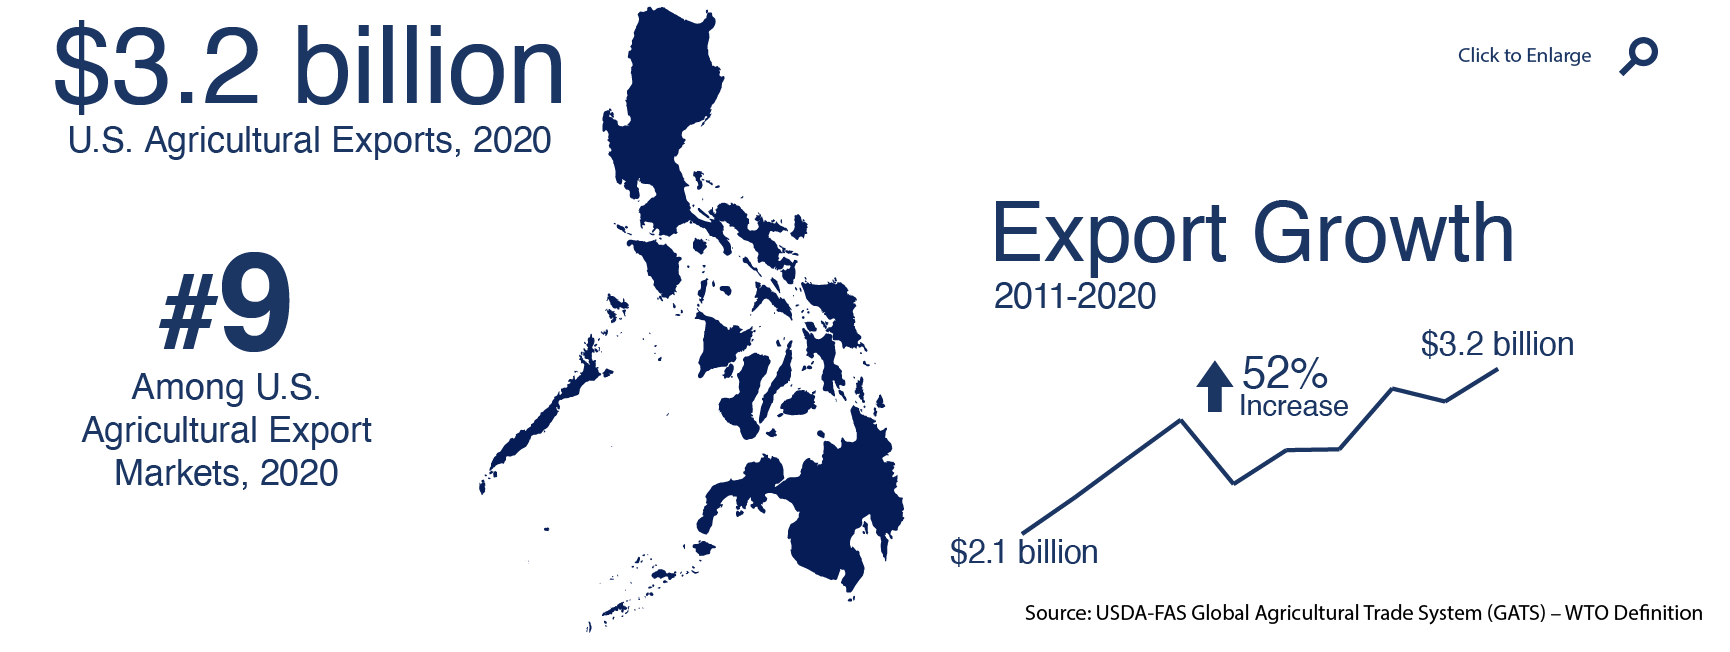 Infographic showing U.S. agricultural exports to Philippines in 2020